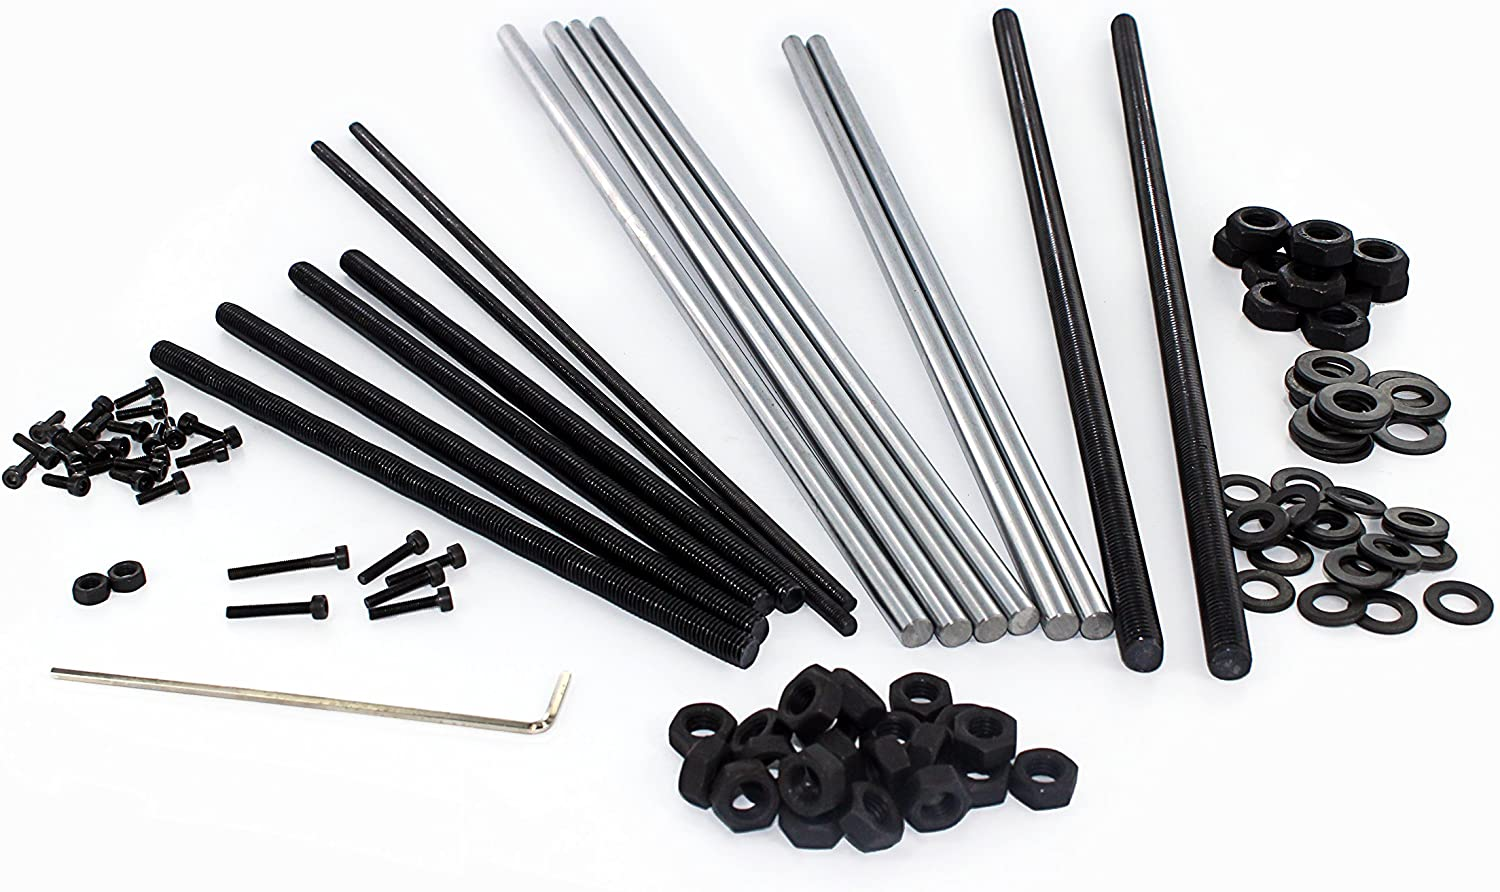 BQ Rods and Screws Kit - Kit de Varillas y tornillería para Prusa ...